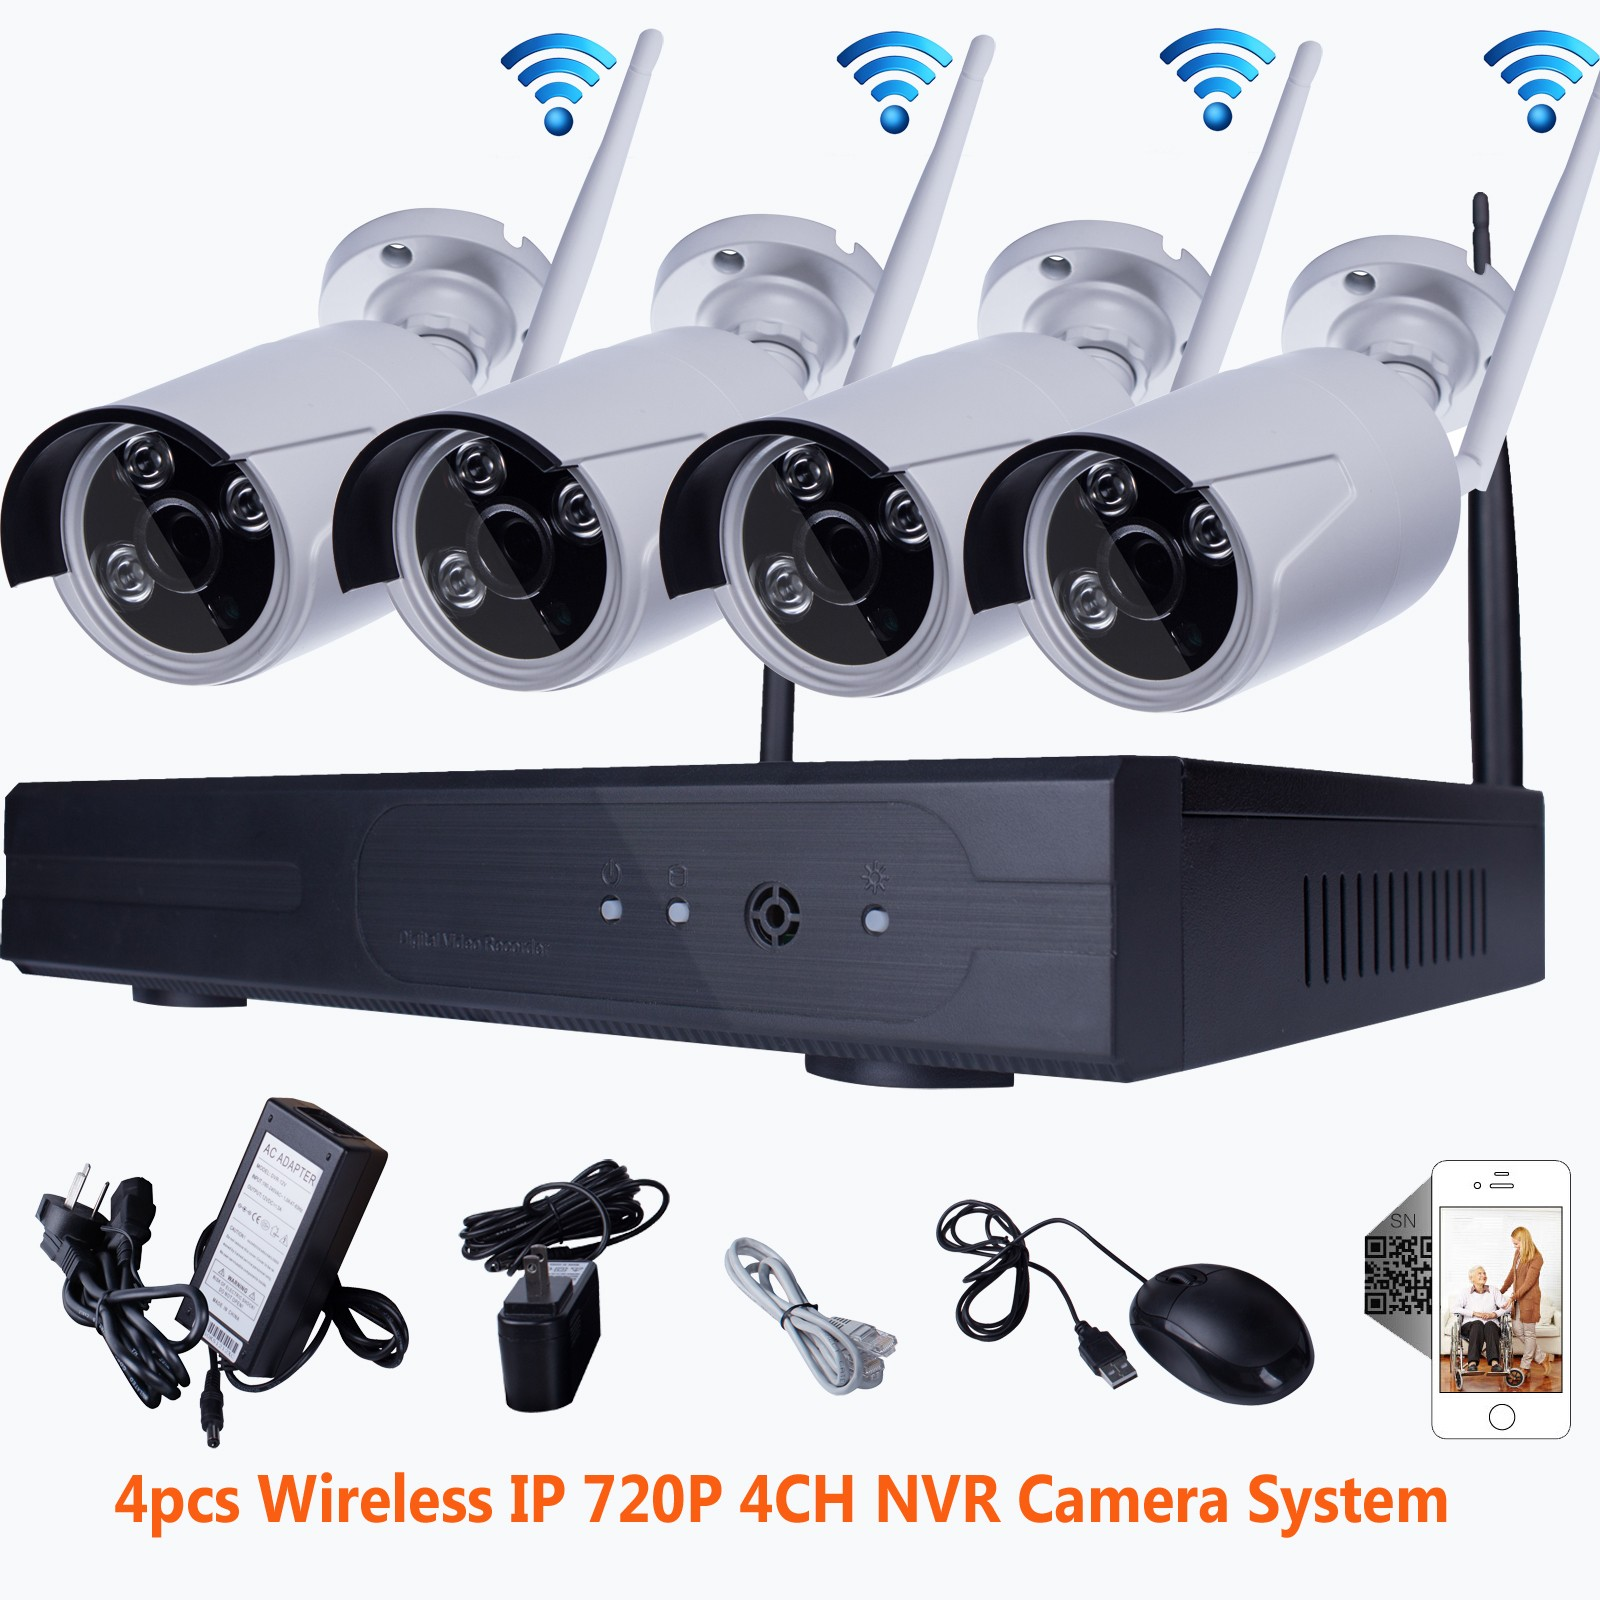 wifi 4ch nvr 720p ip wireless cctv surveillance security system outdoor camera ebay. Black Bedroom Furniture Sets. Home Design Ideas